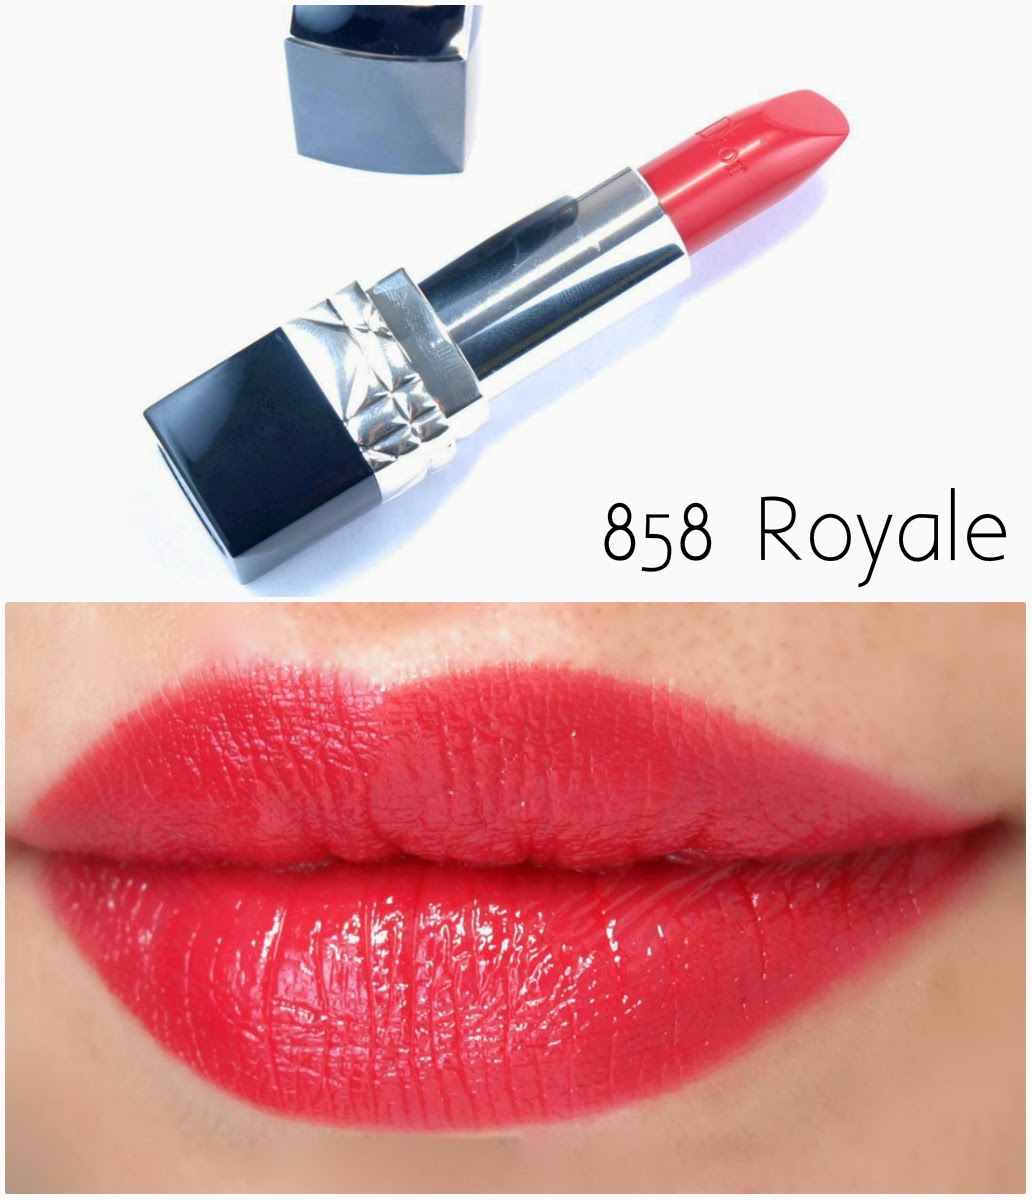 Lipstick review Nude Photos 52